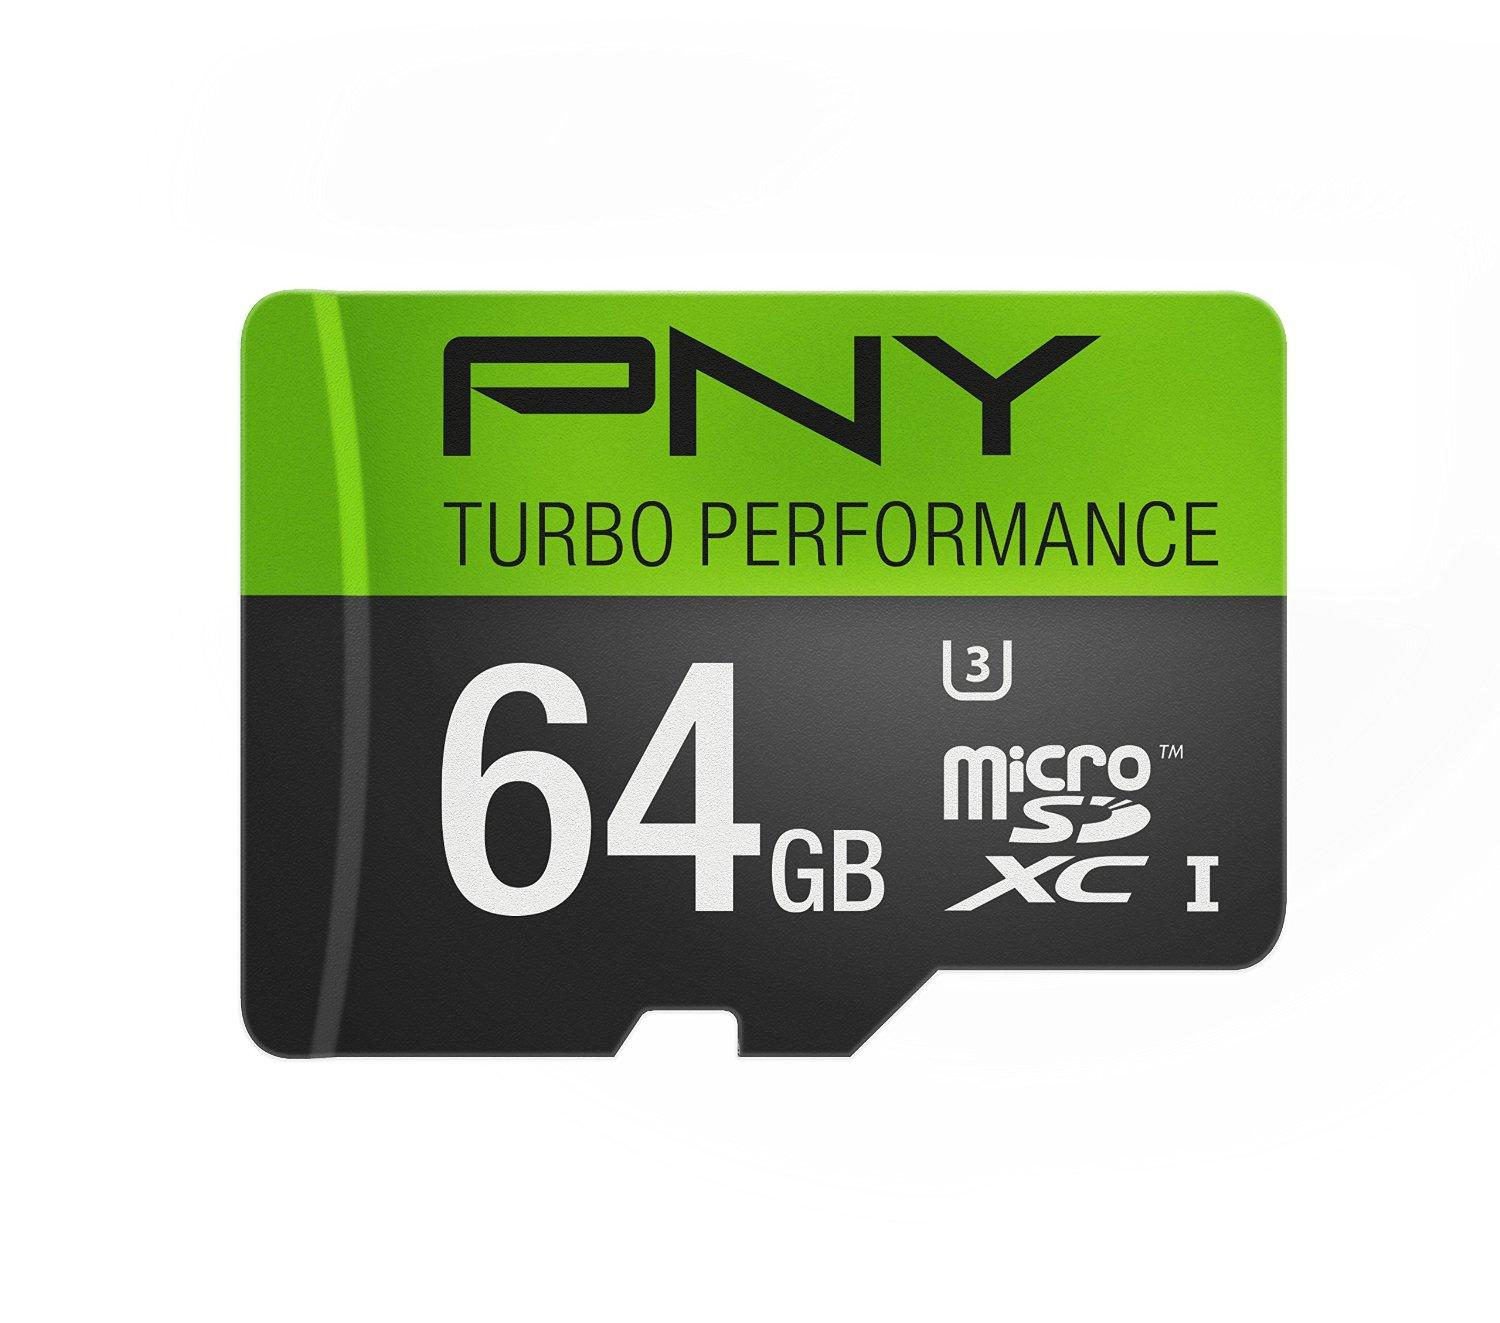 PNY U3 Turbo Performance 64GB High Speed MicroSDXC